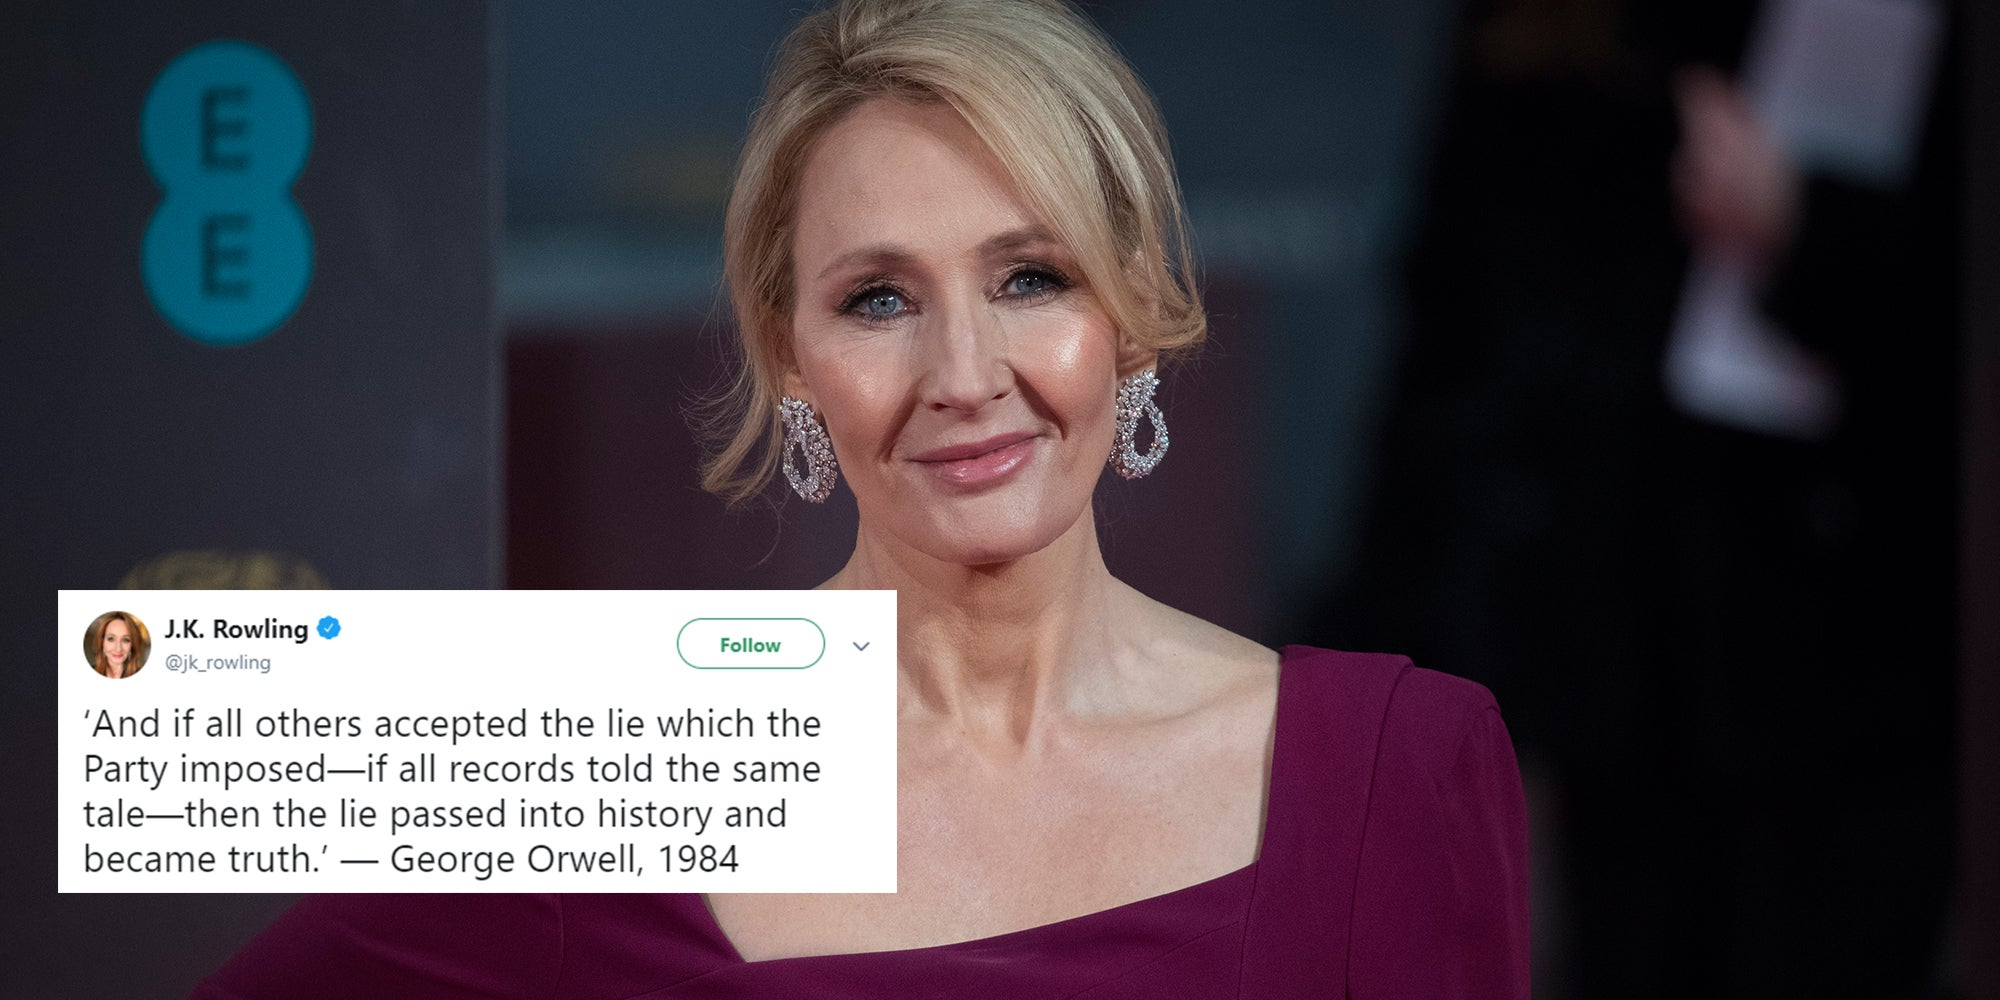 JK Rowling has tweeted about the Acosta video, and people are loving it